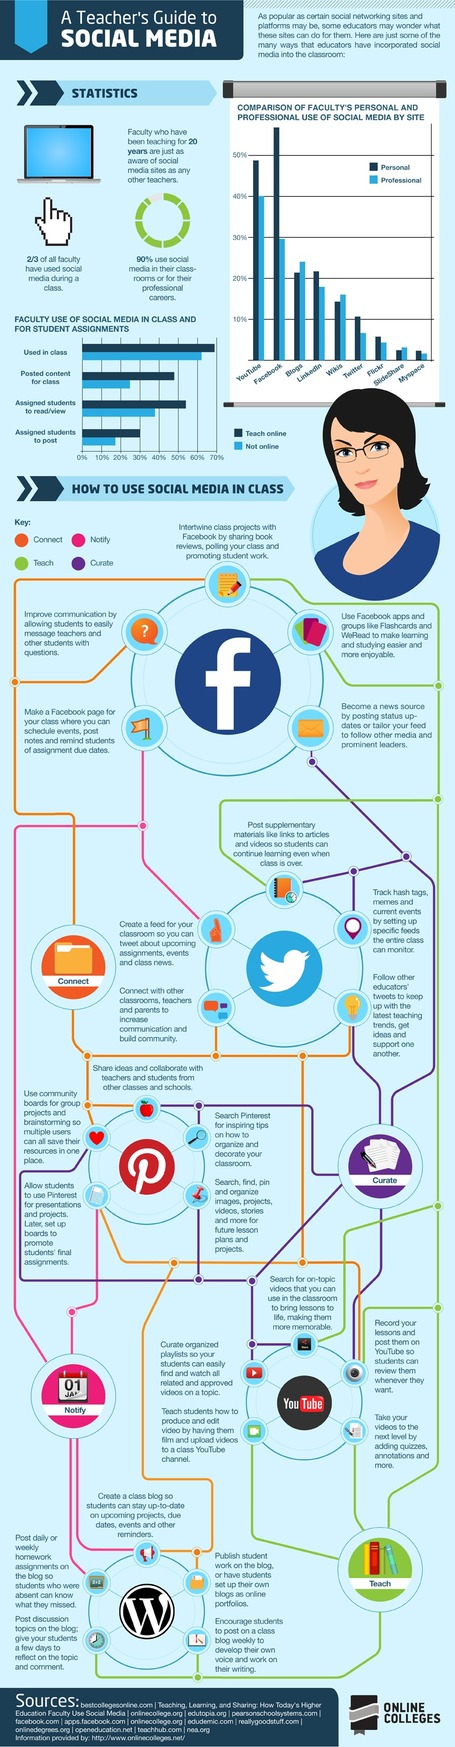 25 Ways Teachers Can Integrate Social Media Into Education [Infographic] | Social Media (network, technology, blog, community, virtual reality, etc...) | Scoop.it